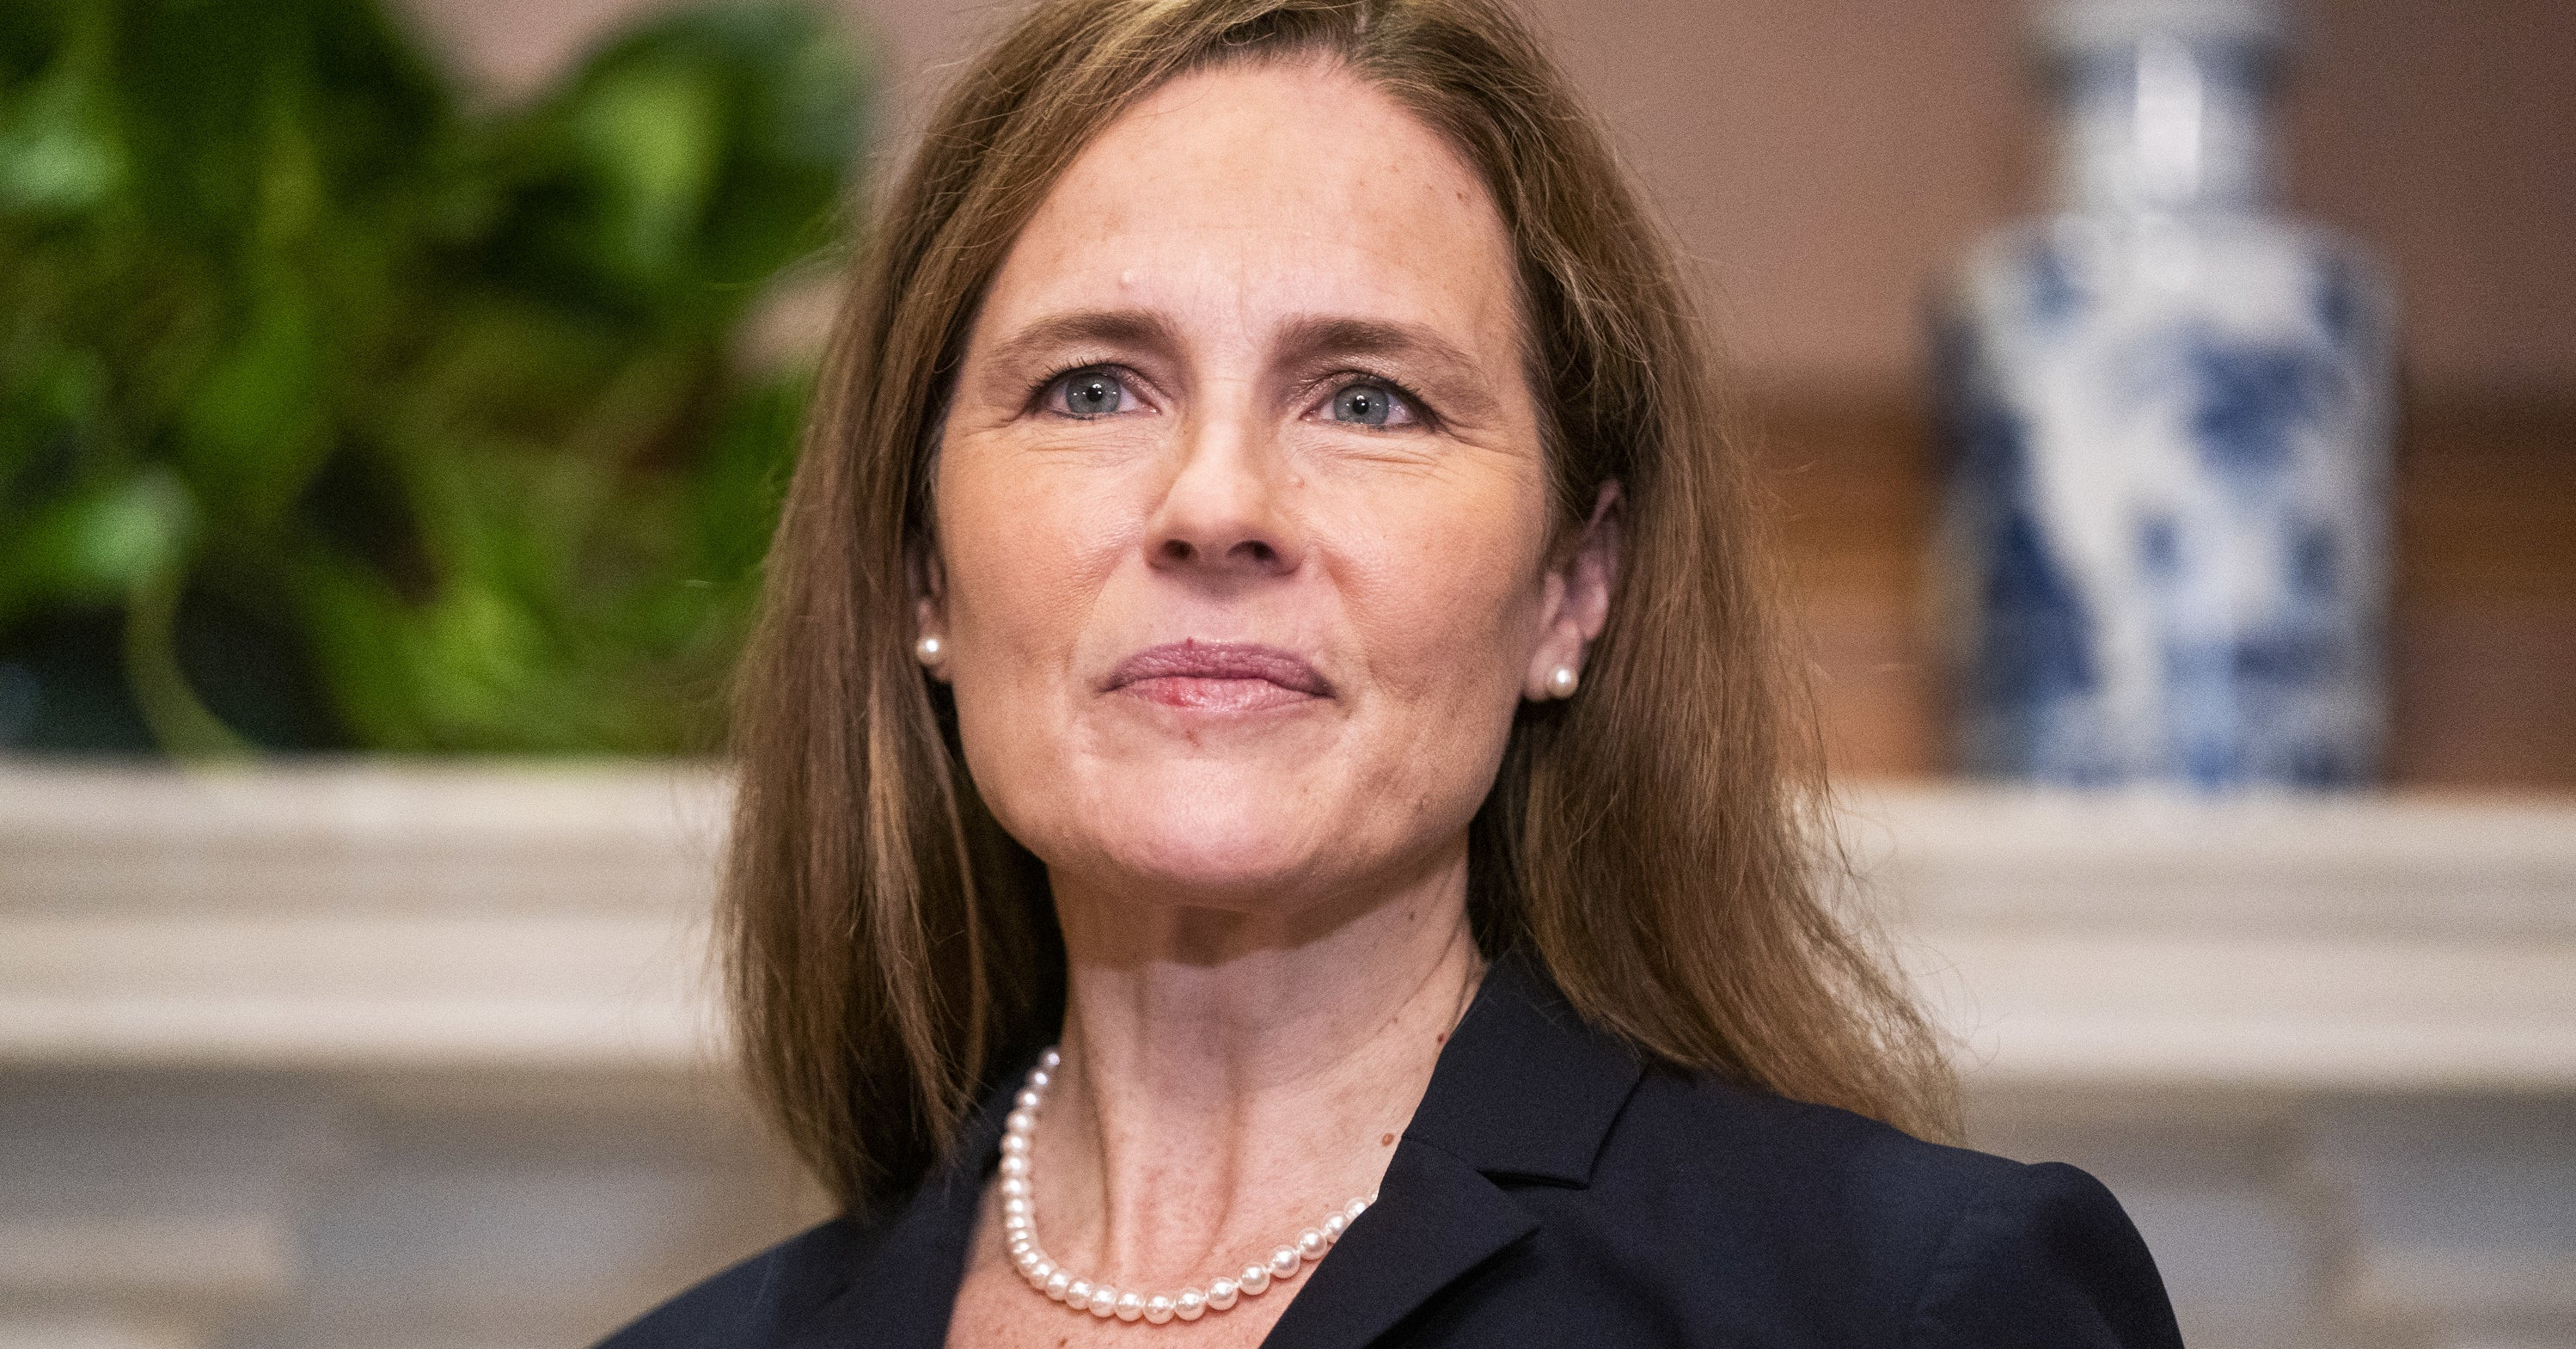 Republicans Have Succeeded In Putting Amy Coney Barrett On The Supreme Court